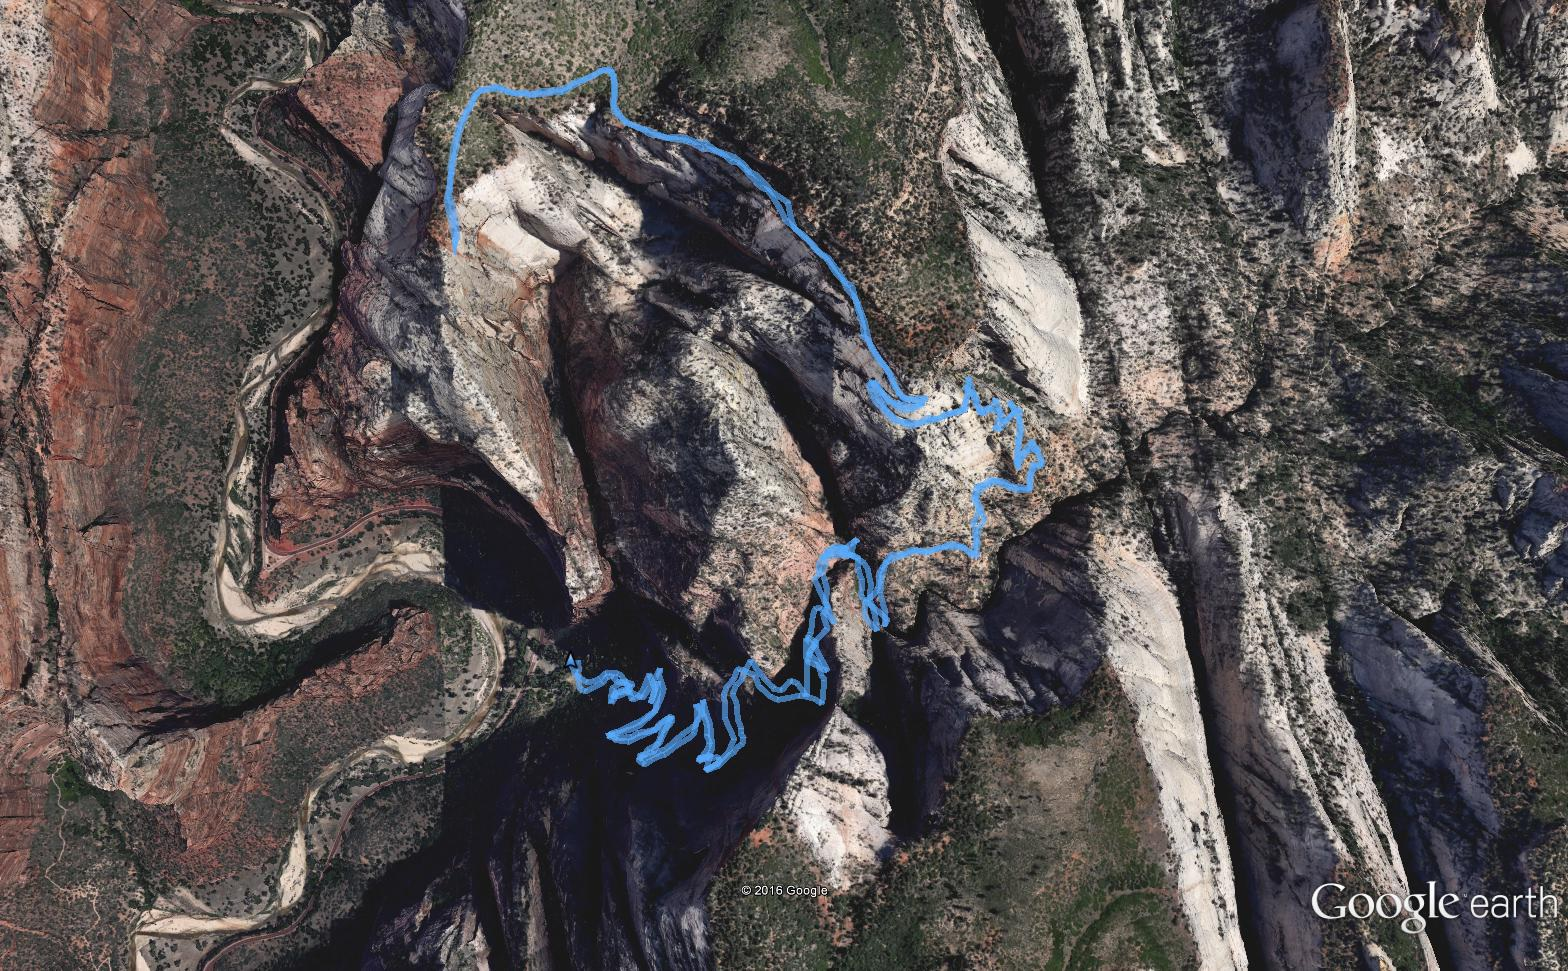 Google Earth view of entire route.